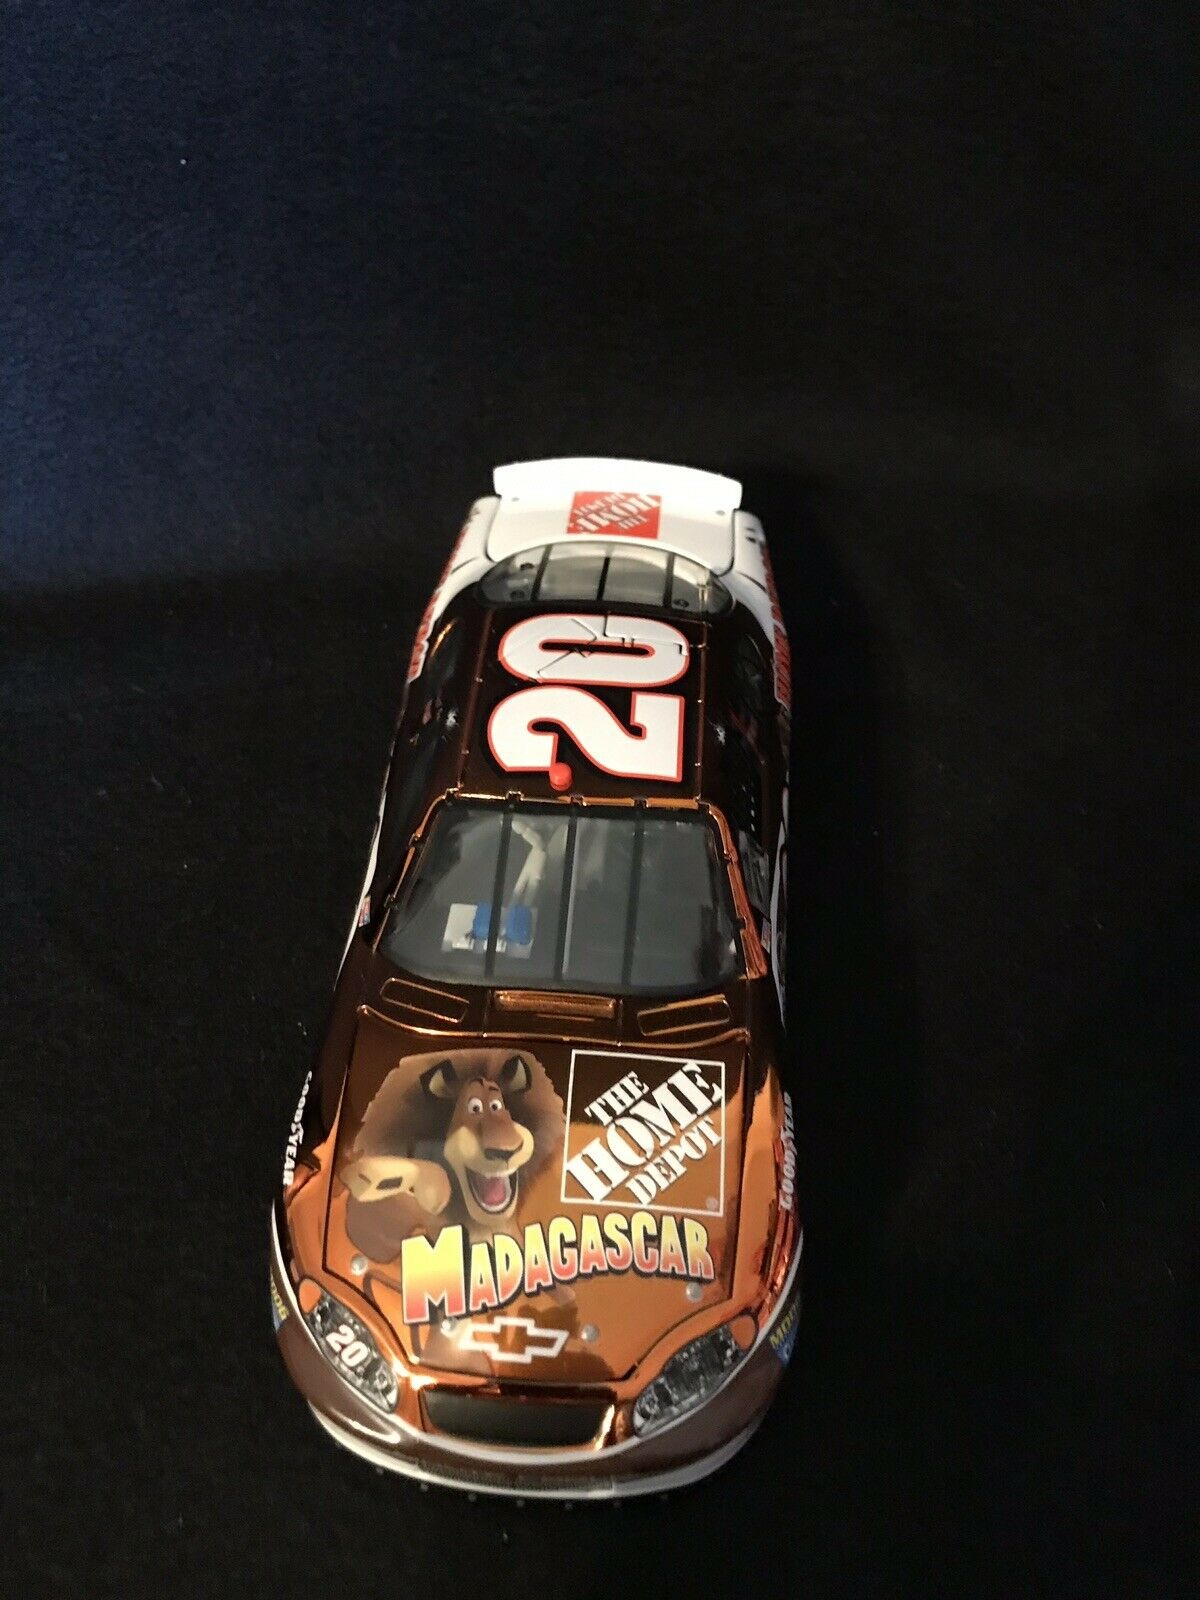 2005 Tony Stewart Home Depot   Madagasauto Monte autolo 1 24 Coloree Chrome L.E.